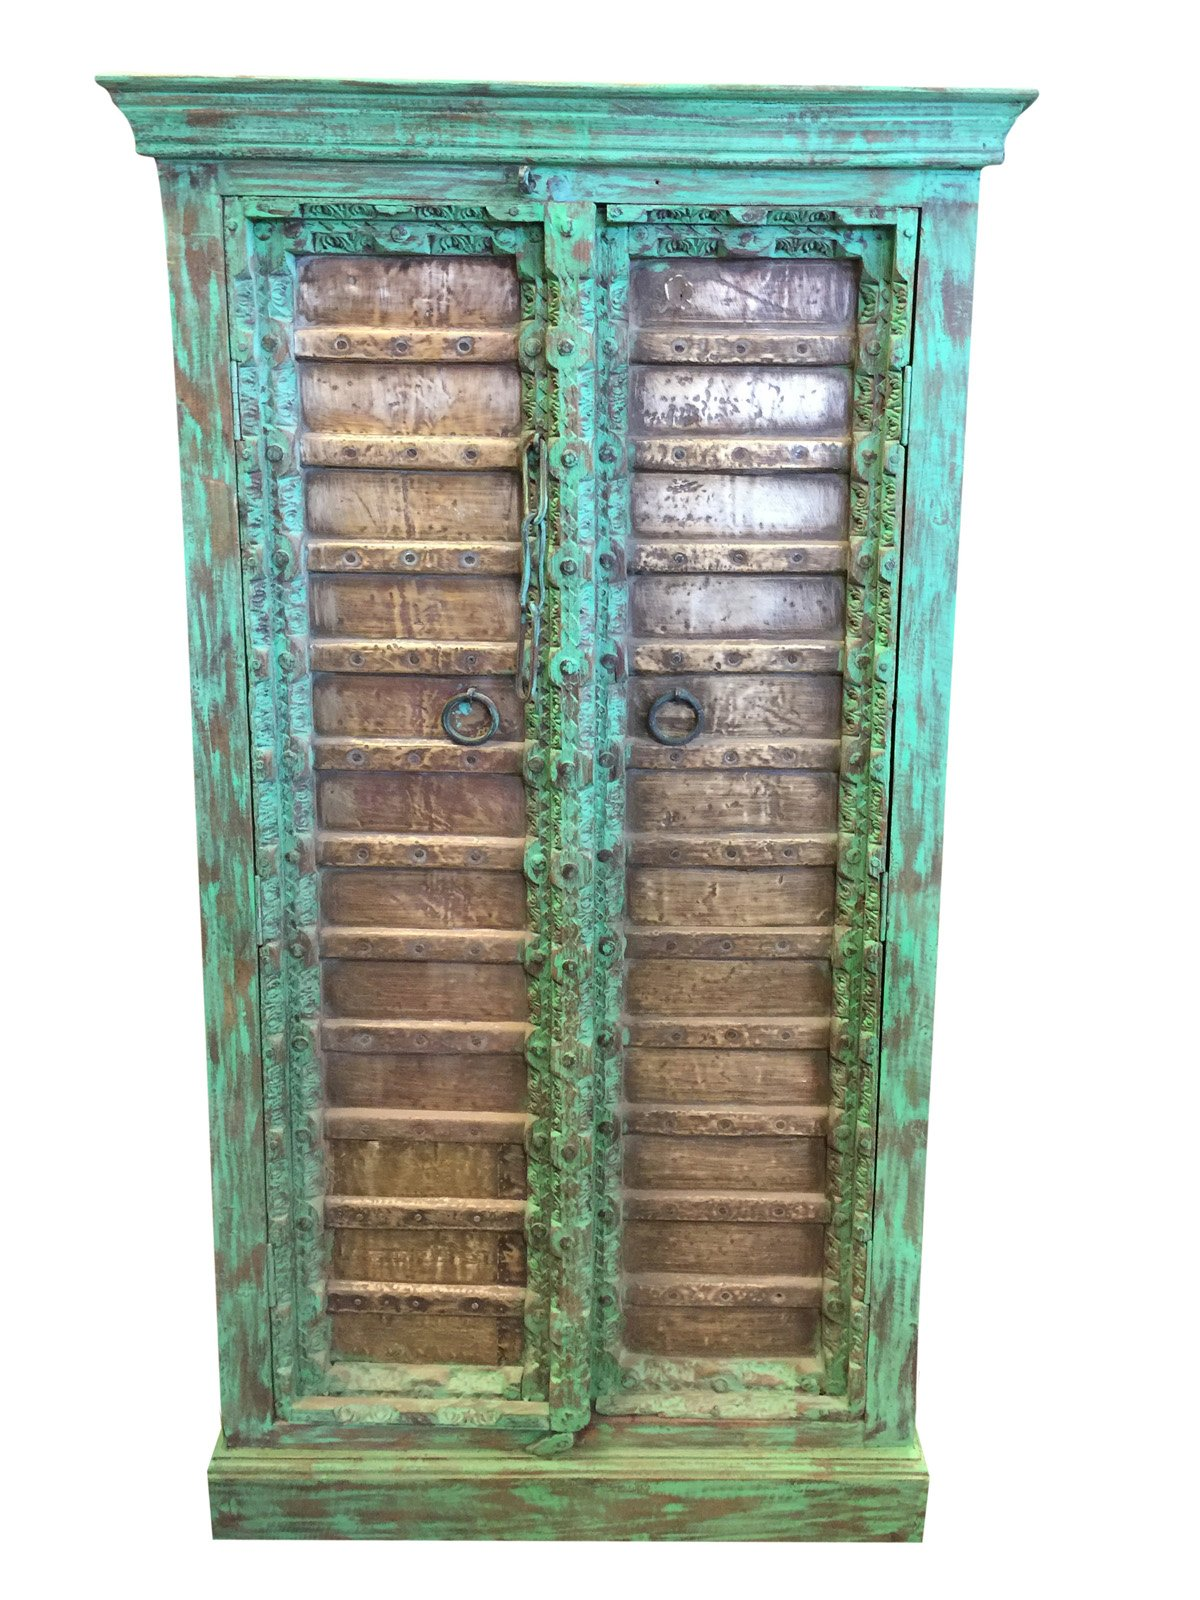 Mogulinterior Rustic Furniture Antique Grounding Armoire Brass Patina Green Storage Cabinet Eclectic